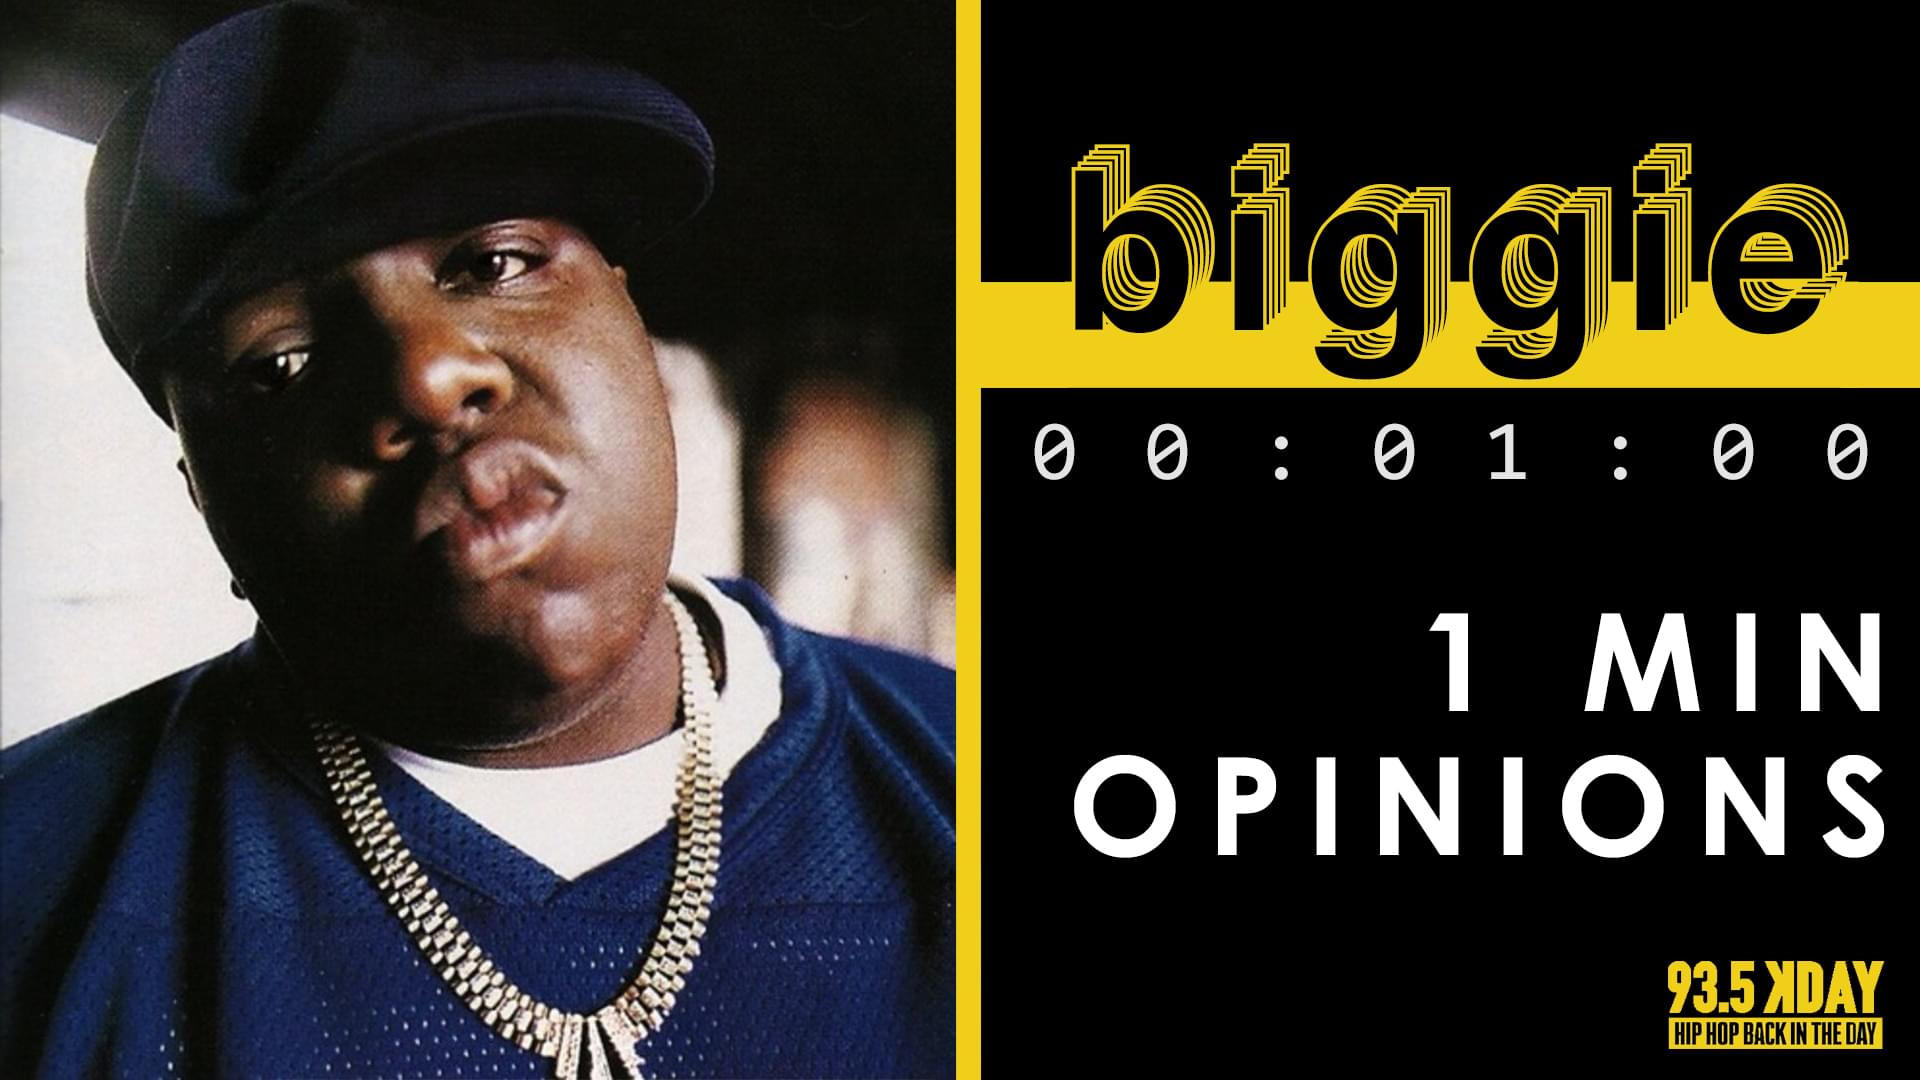 KDAY DJ's Share Their '1 Minute Opinions' On Biggie Smalls [WATCH]